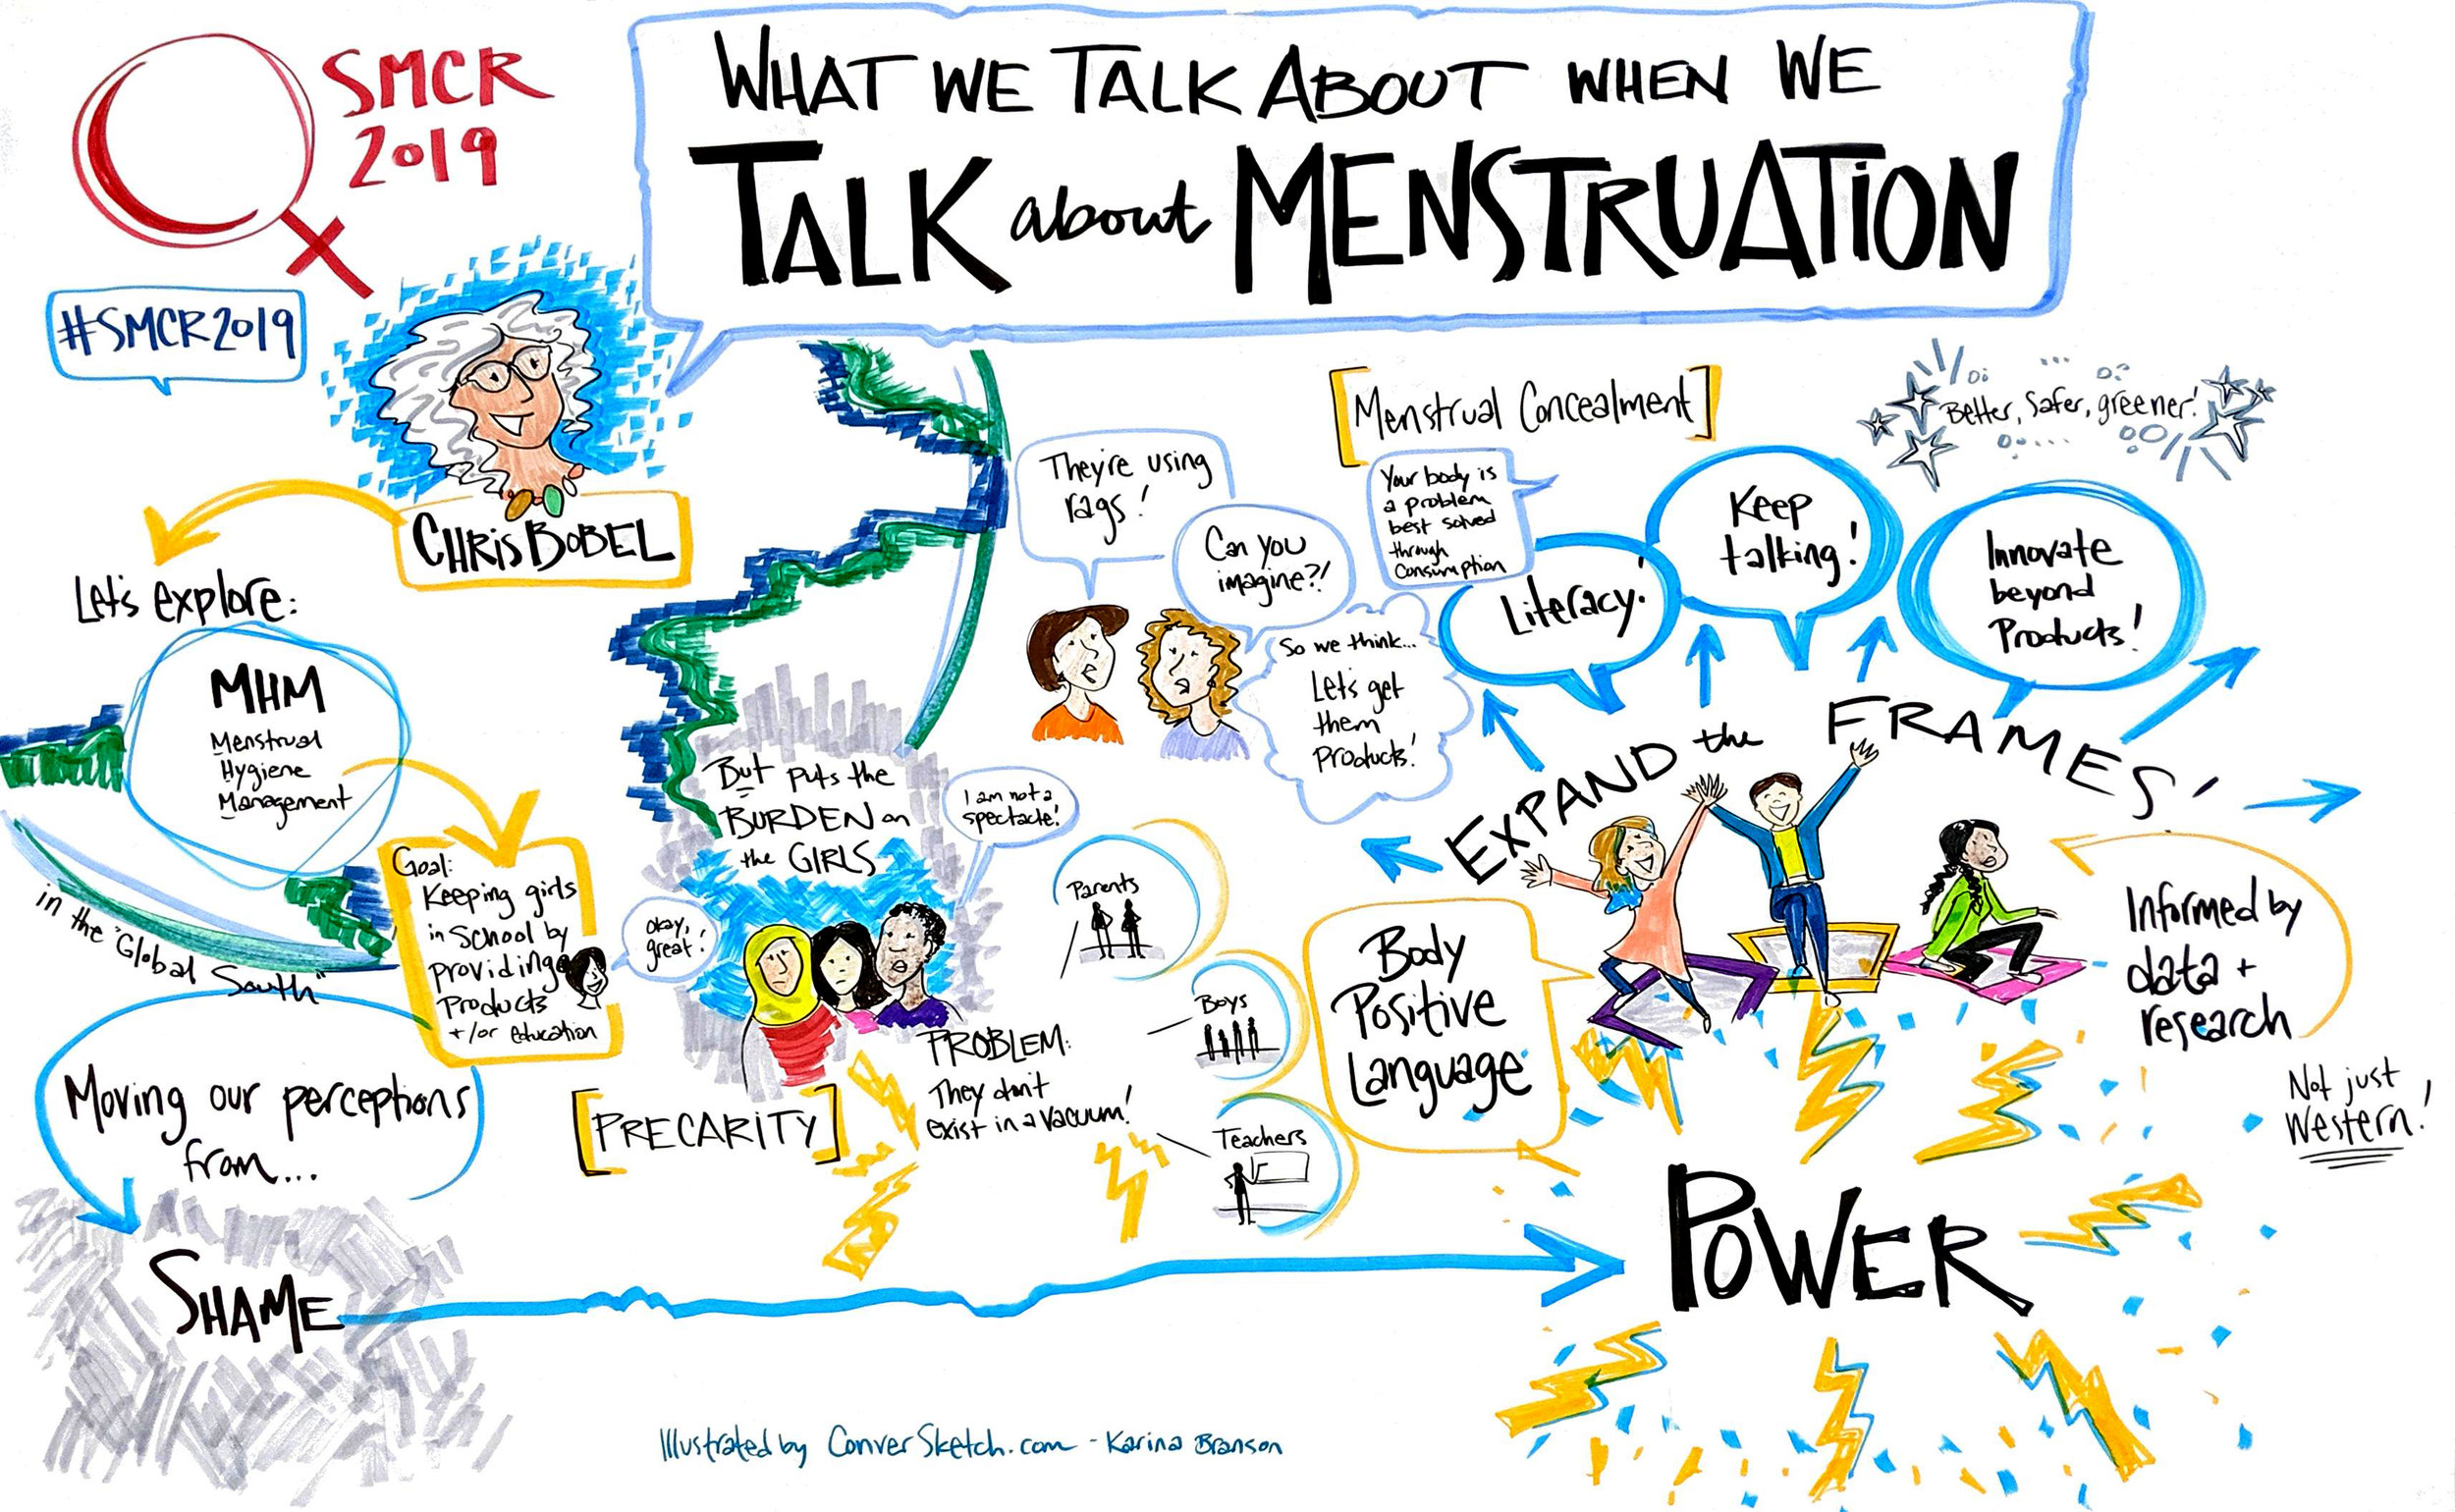 menstrual-cycle-research-symposium-graphic-recording-conversketch-chris-bobel